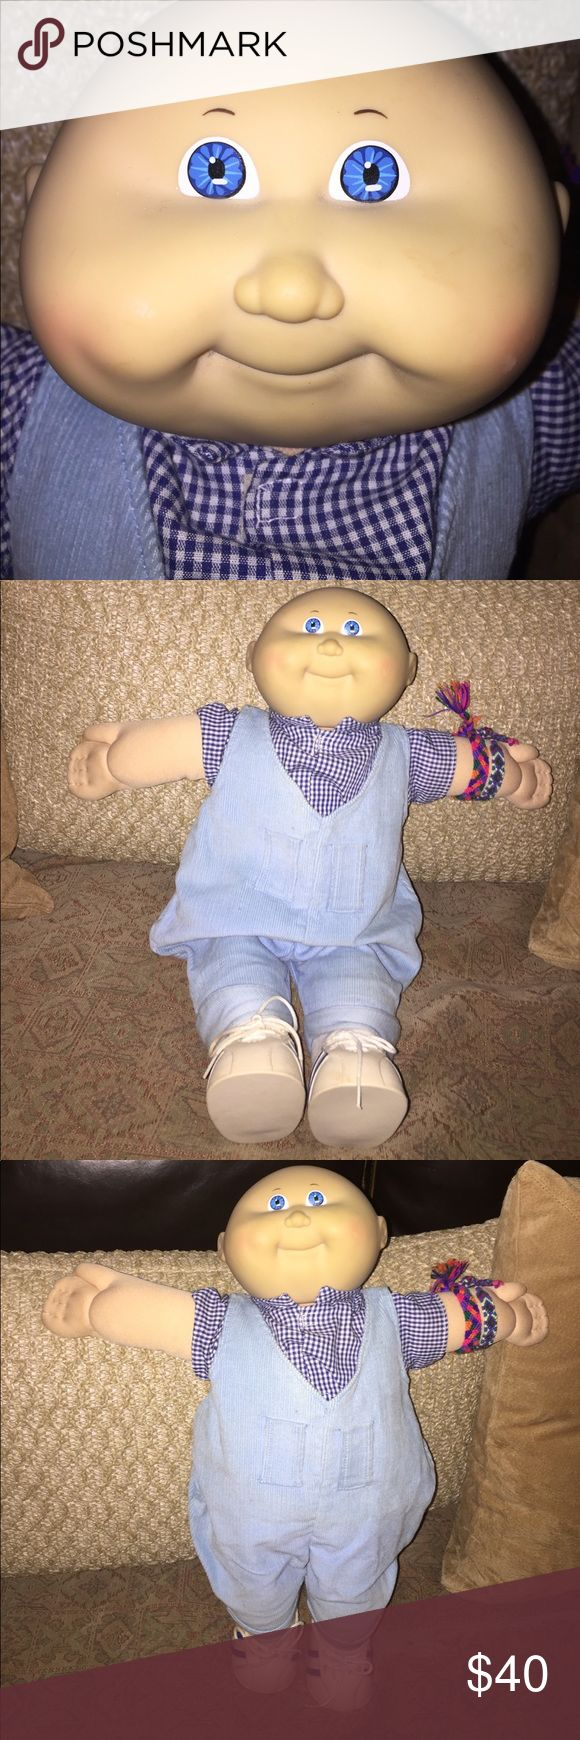 Authentic 1982 Cabbage Patch Baby Boy Authentic 1982 Cabbage Patch Baby Boy - no box or papers, but never played with. Clean and from pet and smoke free home. This Baby  Boy needs a family!!! Cabbage Patch Other